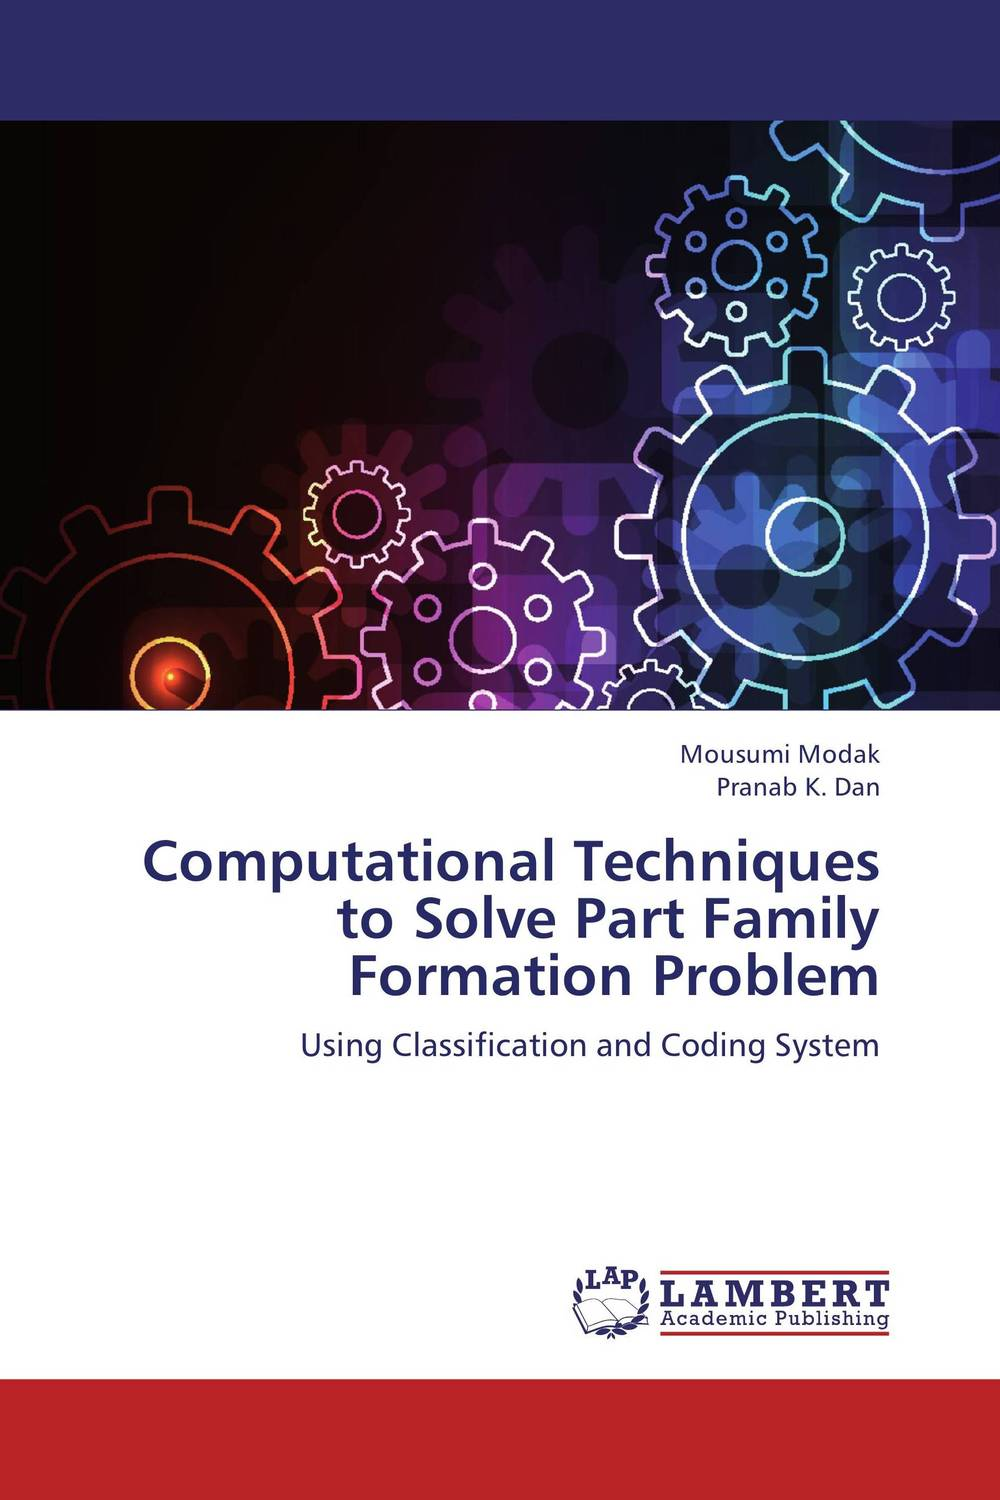 Computational Techniques to Solve Part Family Formation Problem clustering and optimization based image segmentation techniques